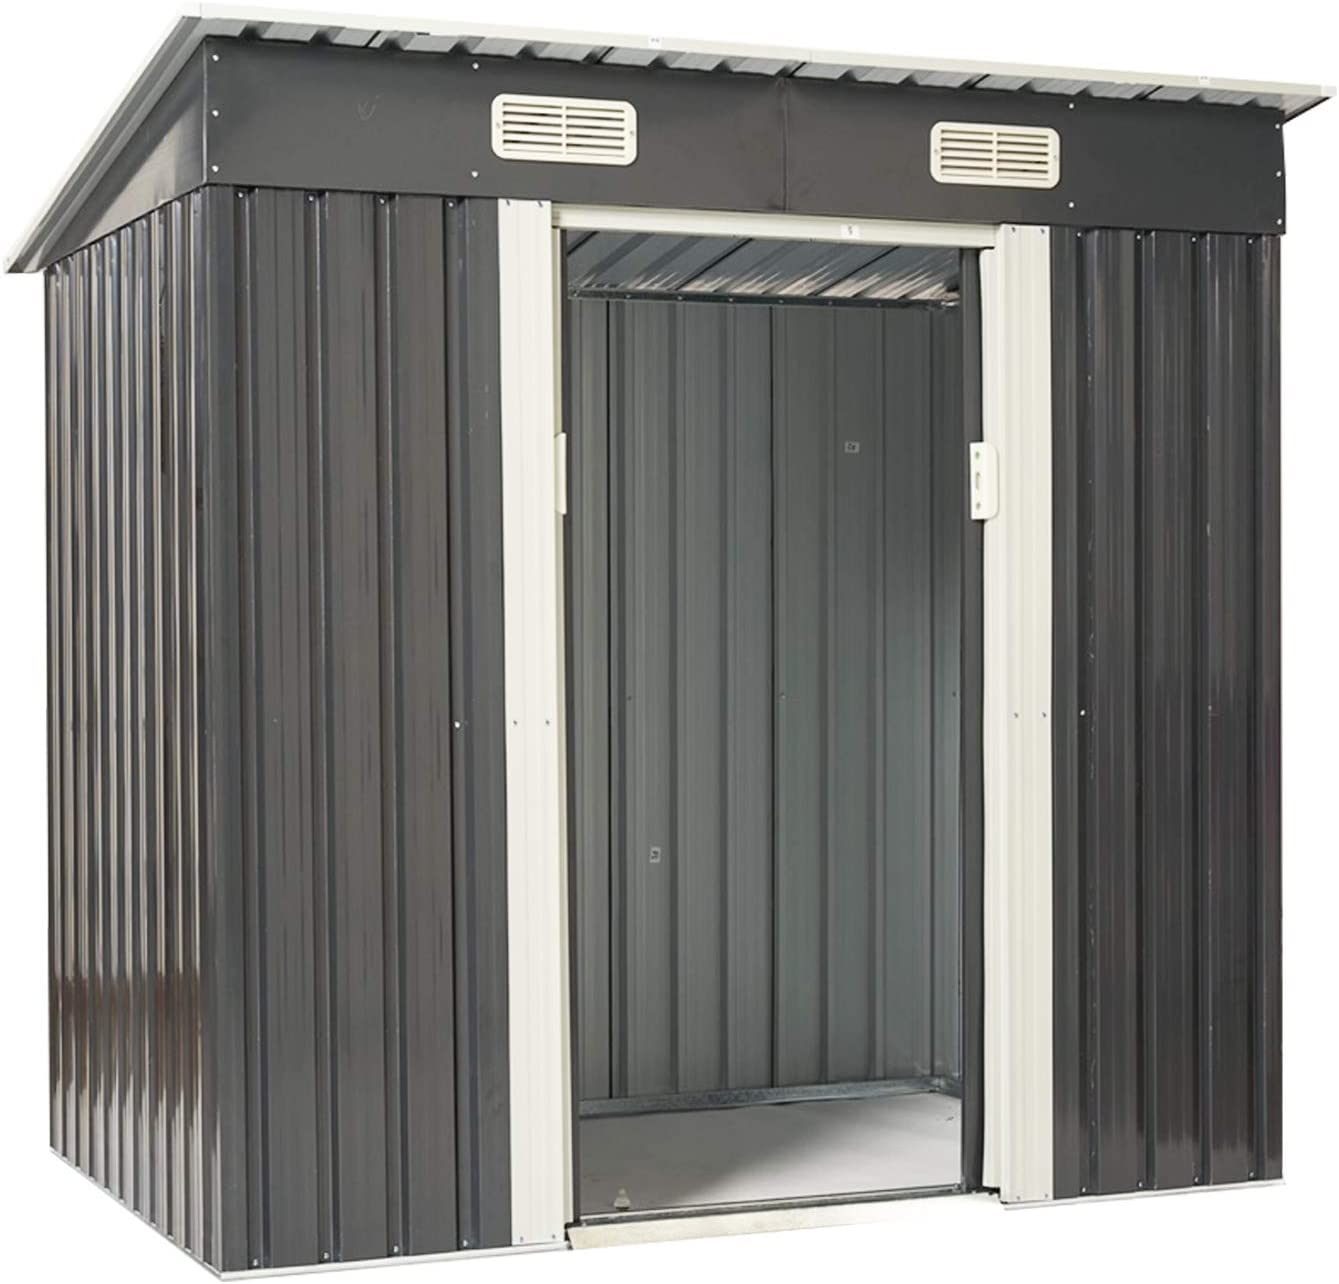 Patiomore 4X6 FT Outdoor Max 59% OFF Garden Tool Storage Shed Atlanta Mall Yard S